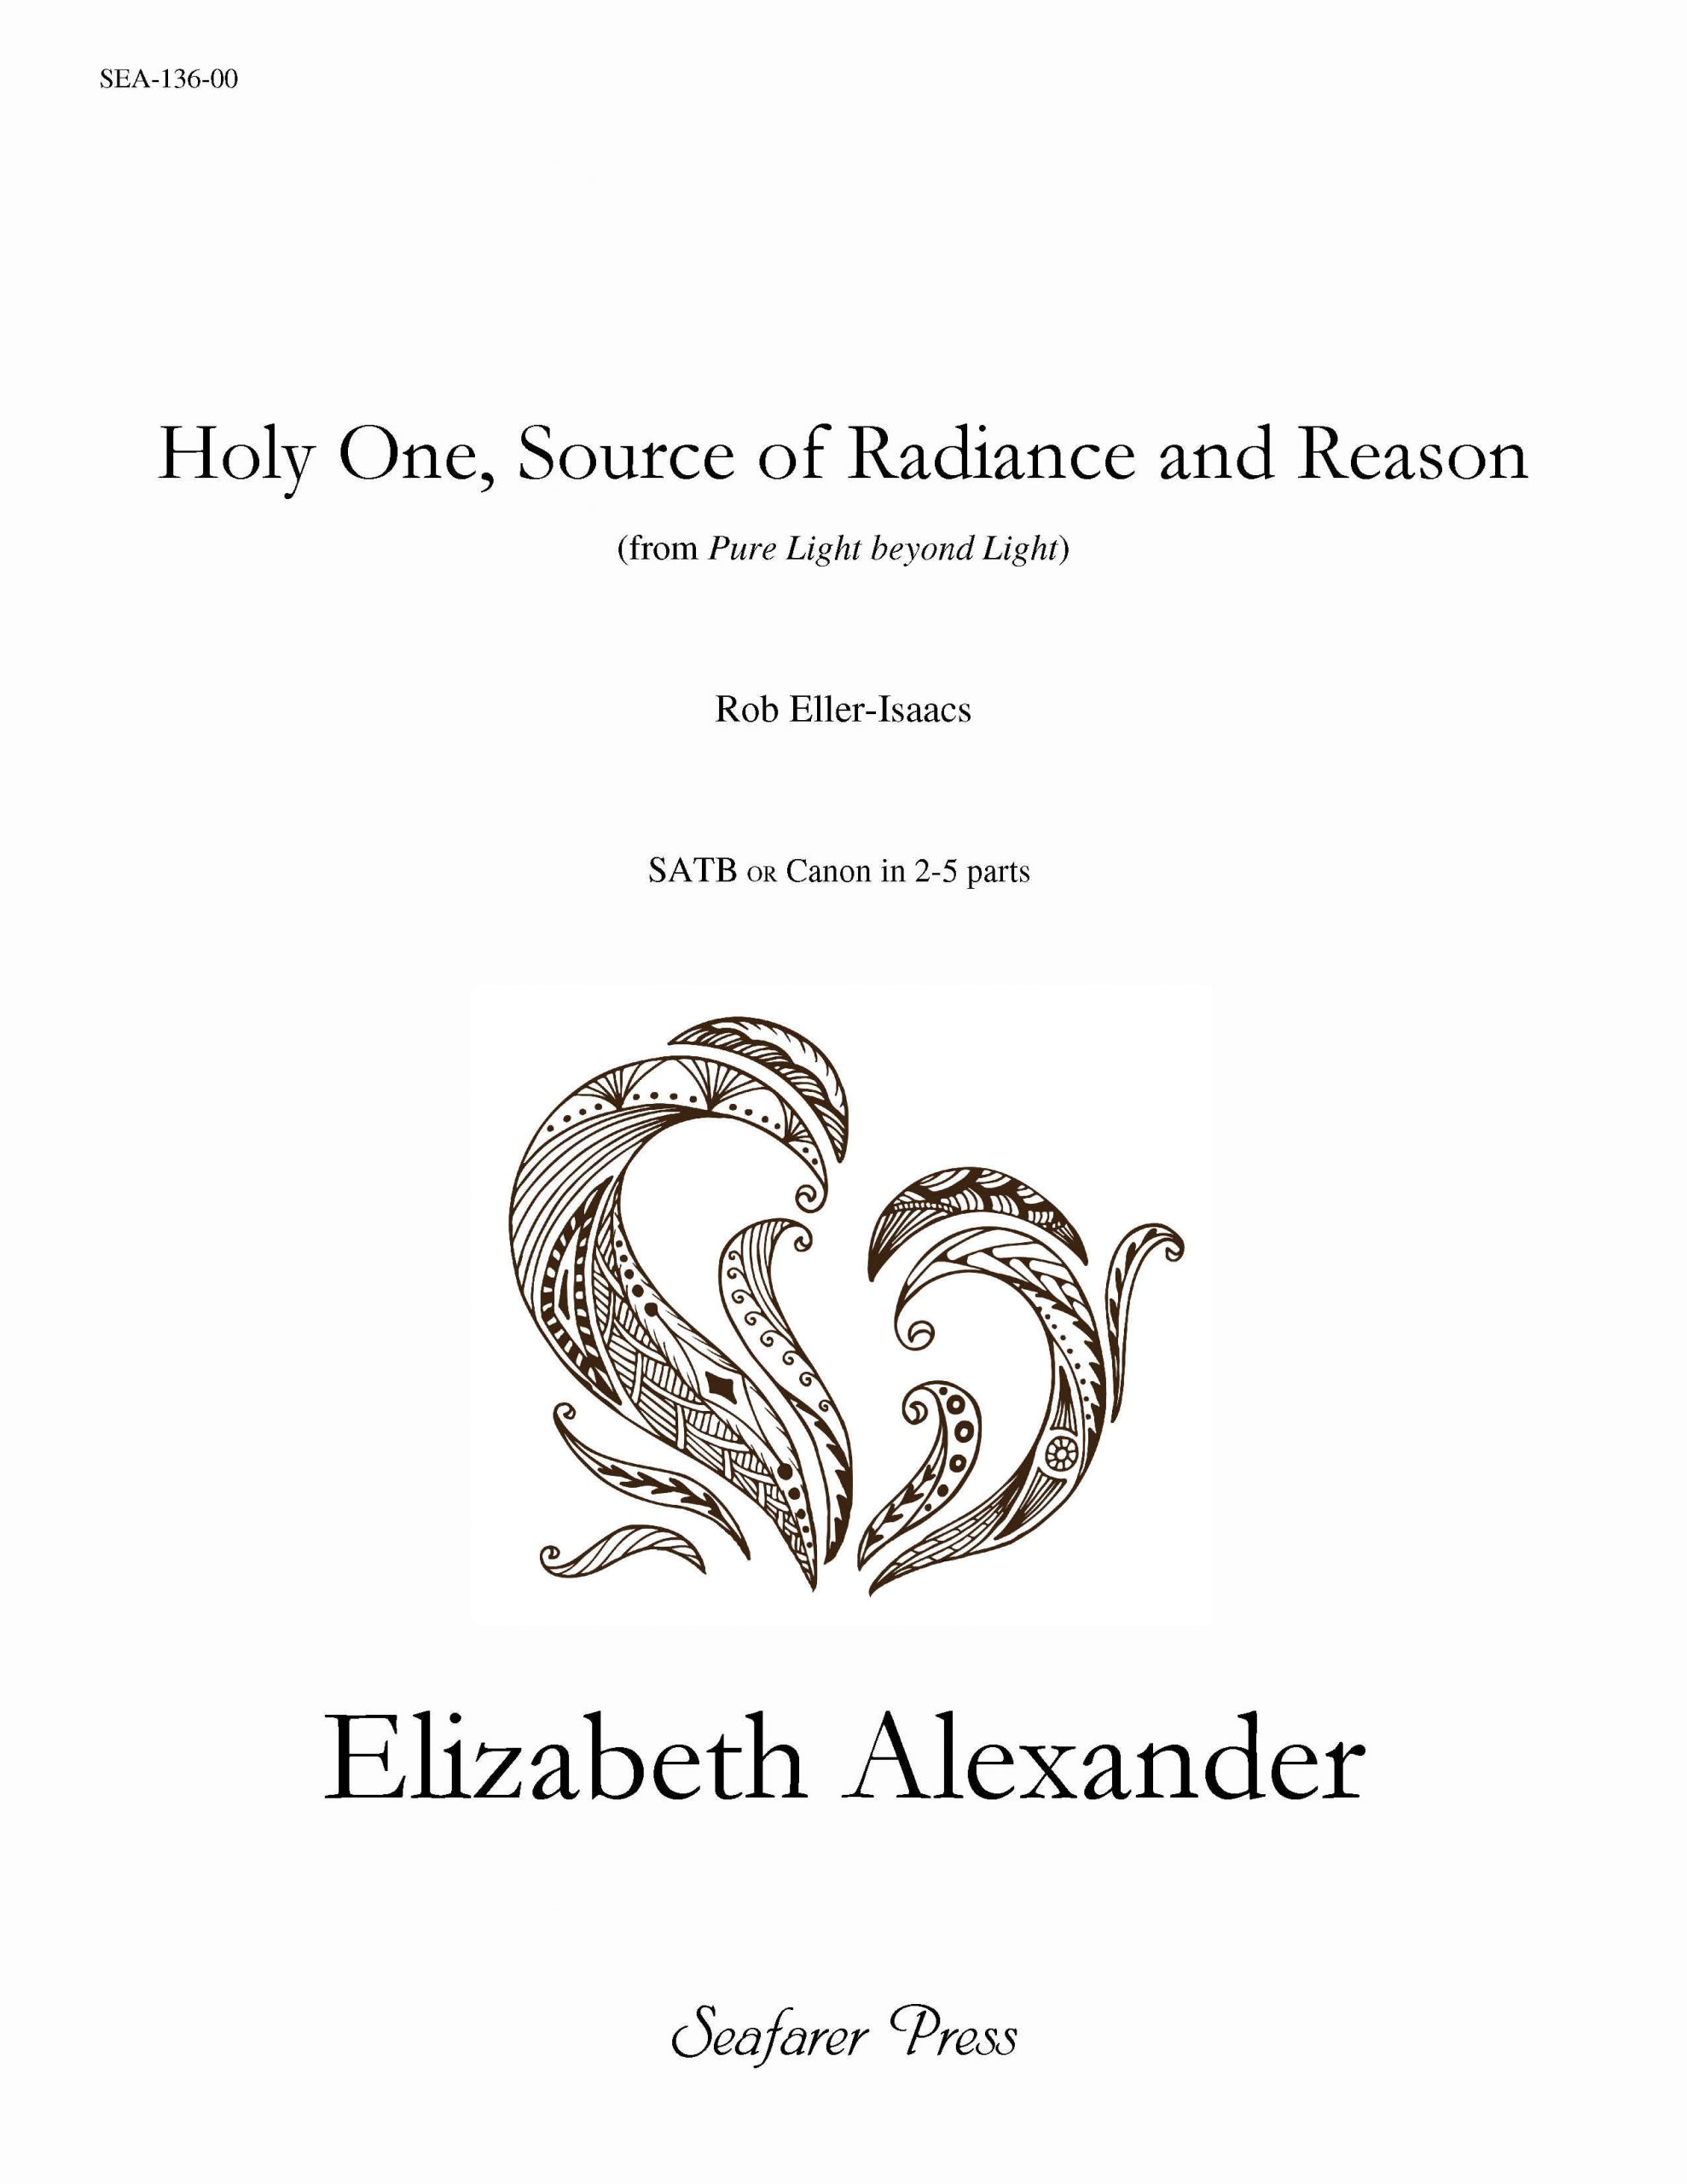 SEA-136-00 - Holy One, Source of Radiance and Reason